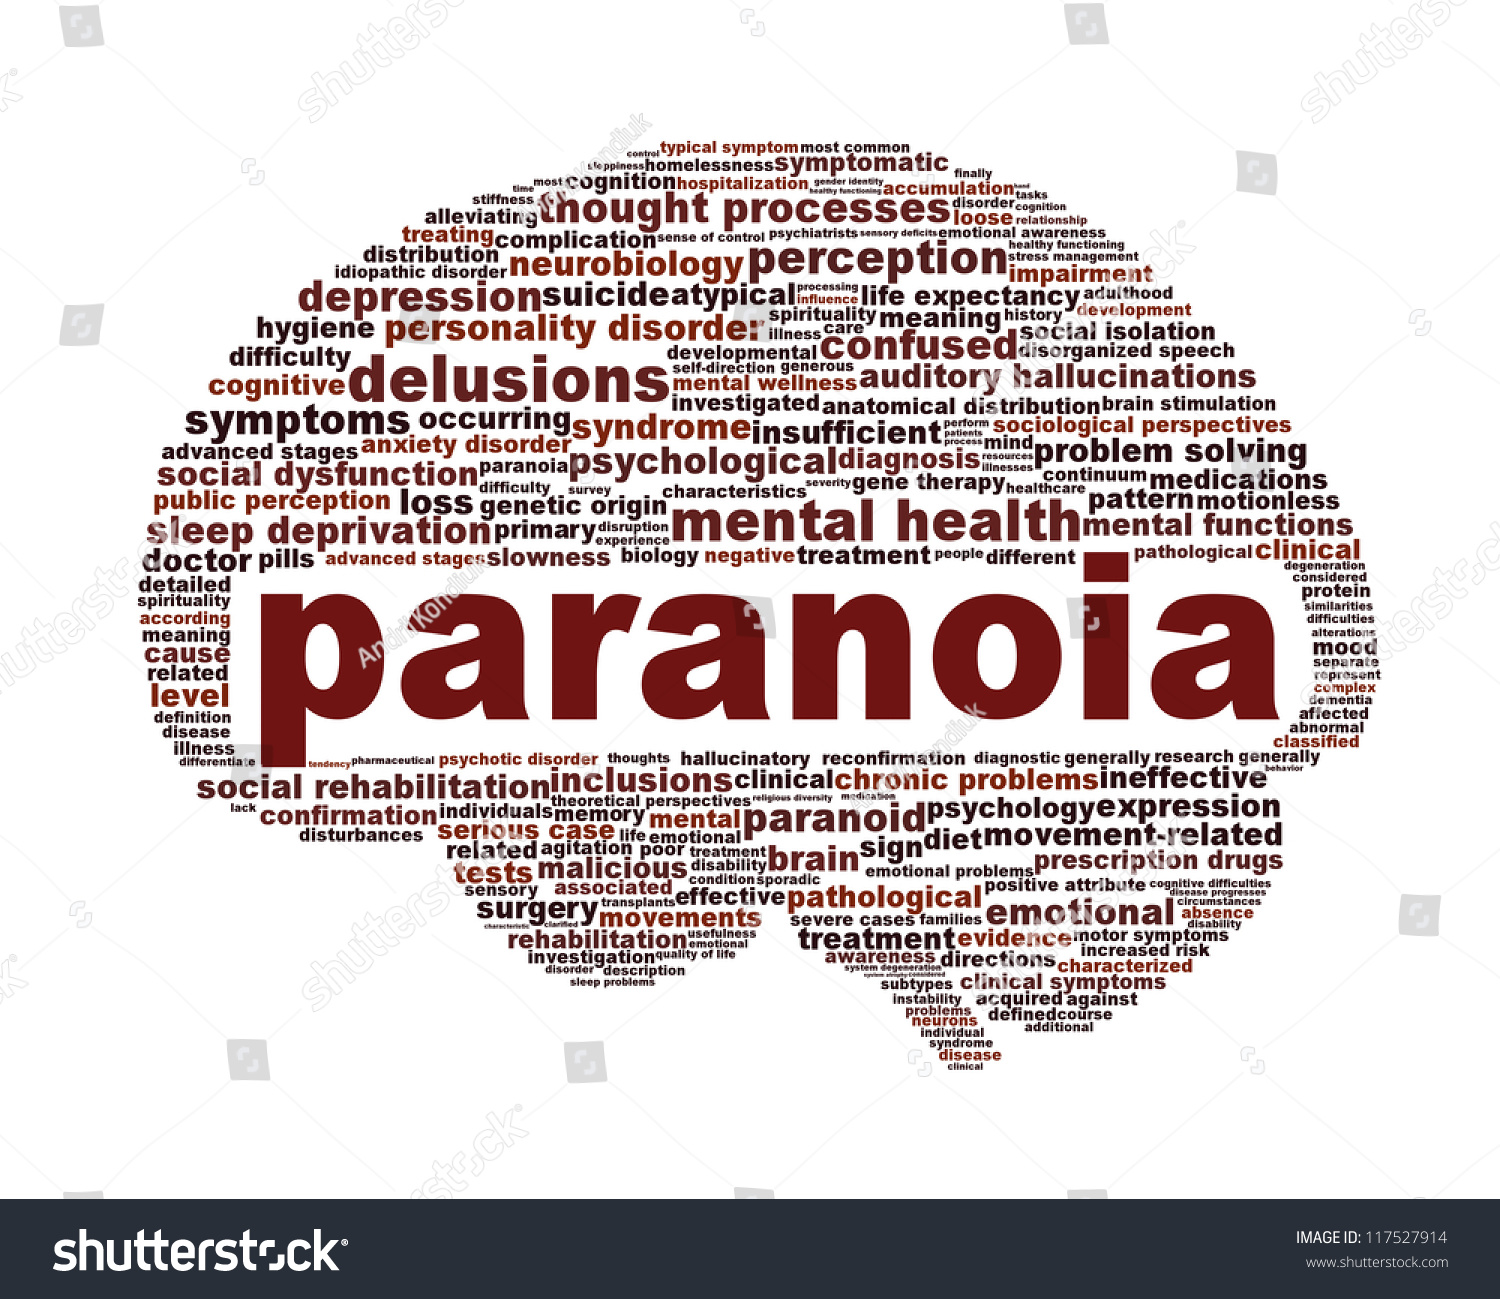 Paranoia stock photos images pictures 28 images for Fish food pantry galesburg il